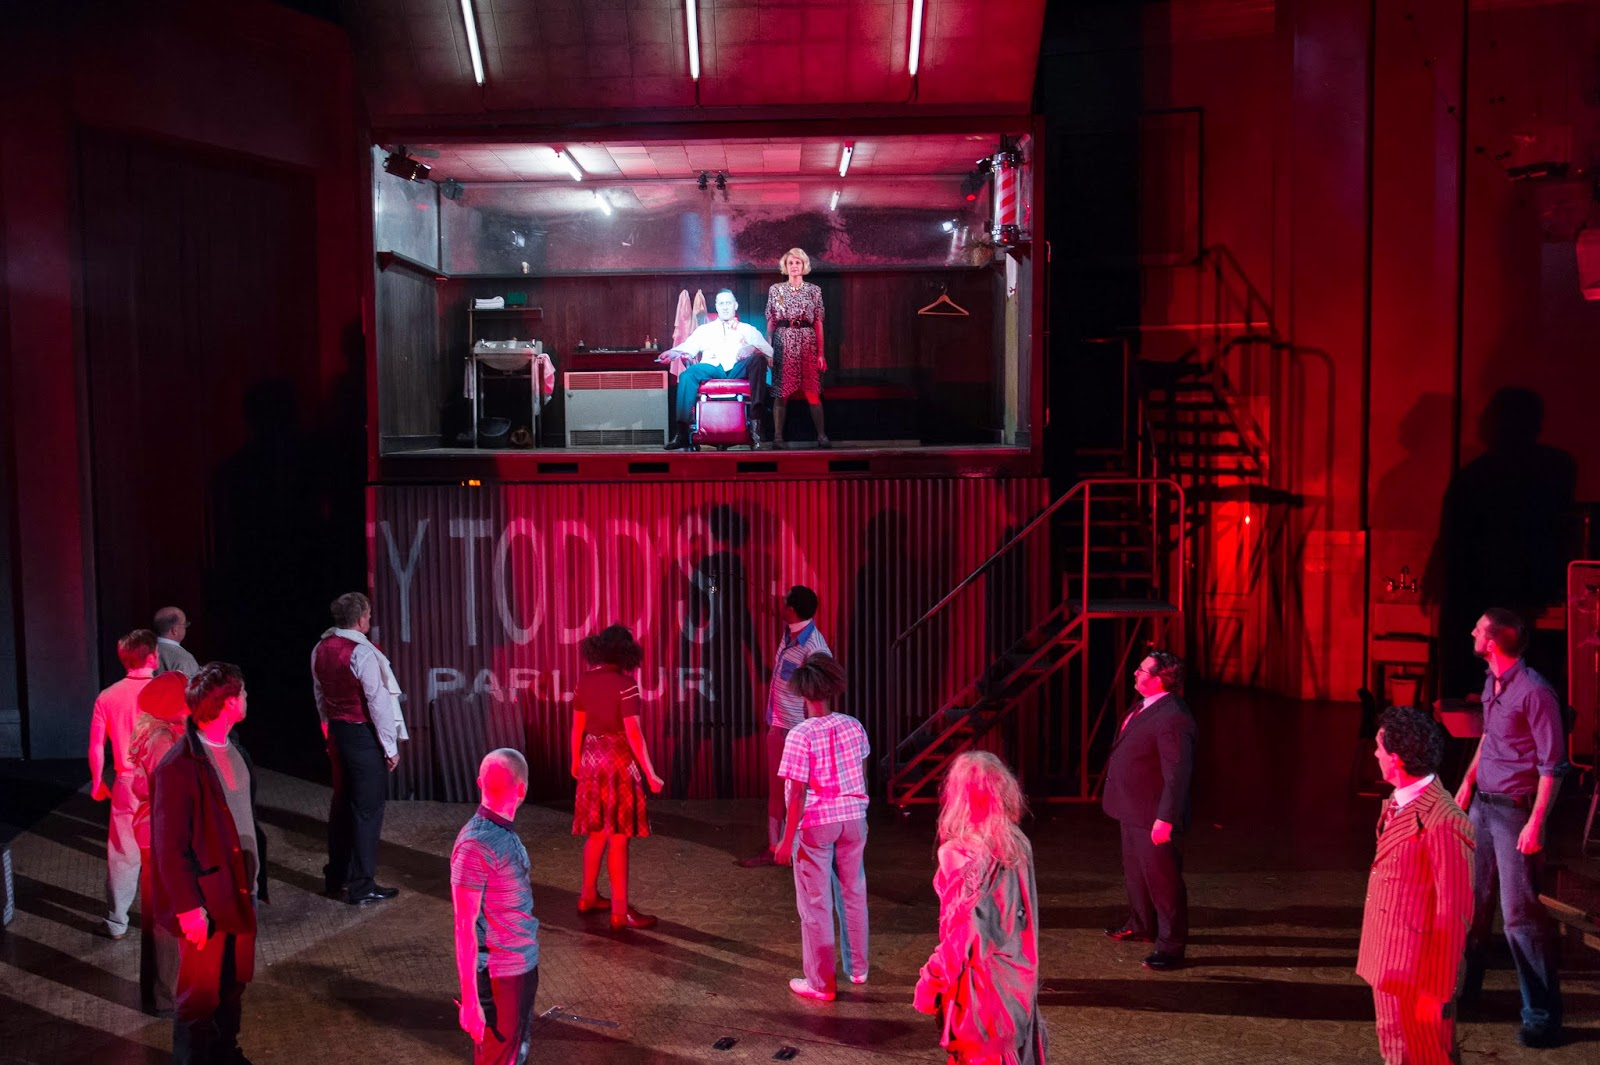 Sweeney Todd - David Birrell, Gillian Bevan & Ensemble  Credit: Manuel Harlan